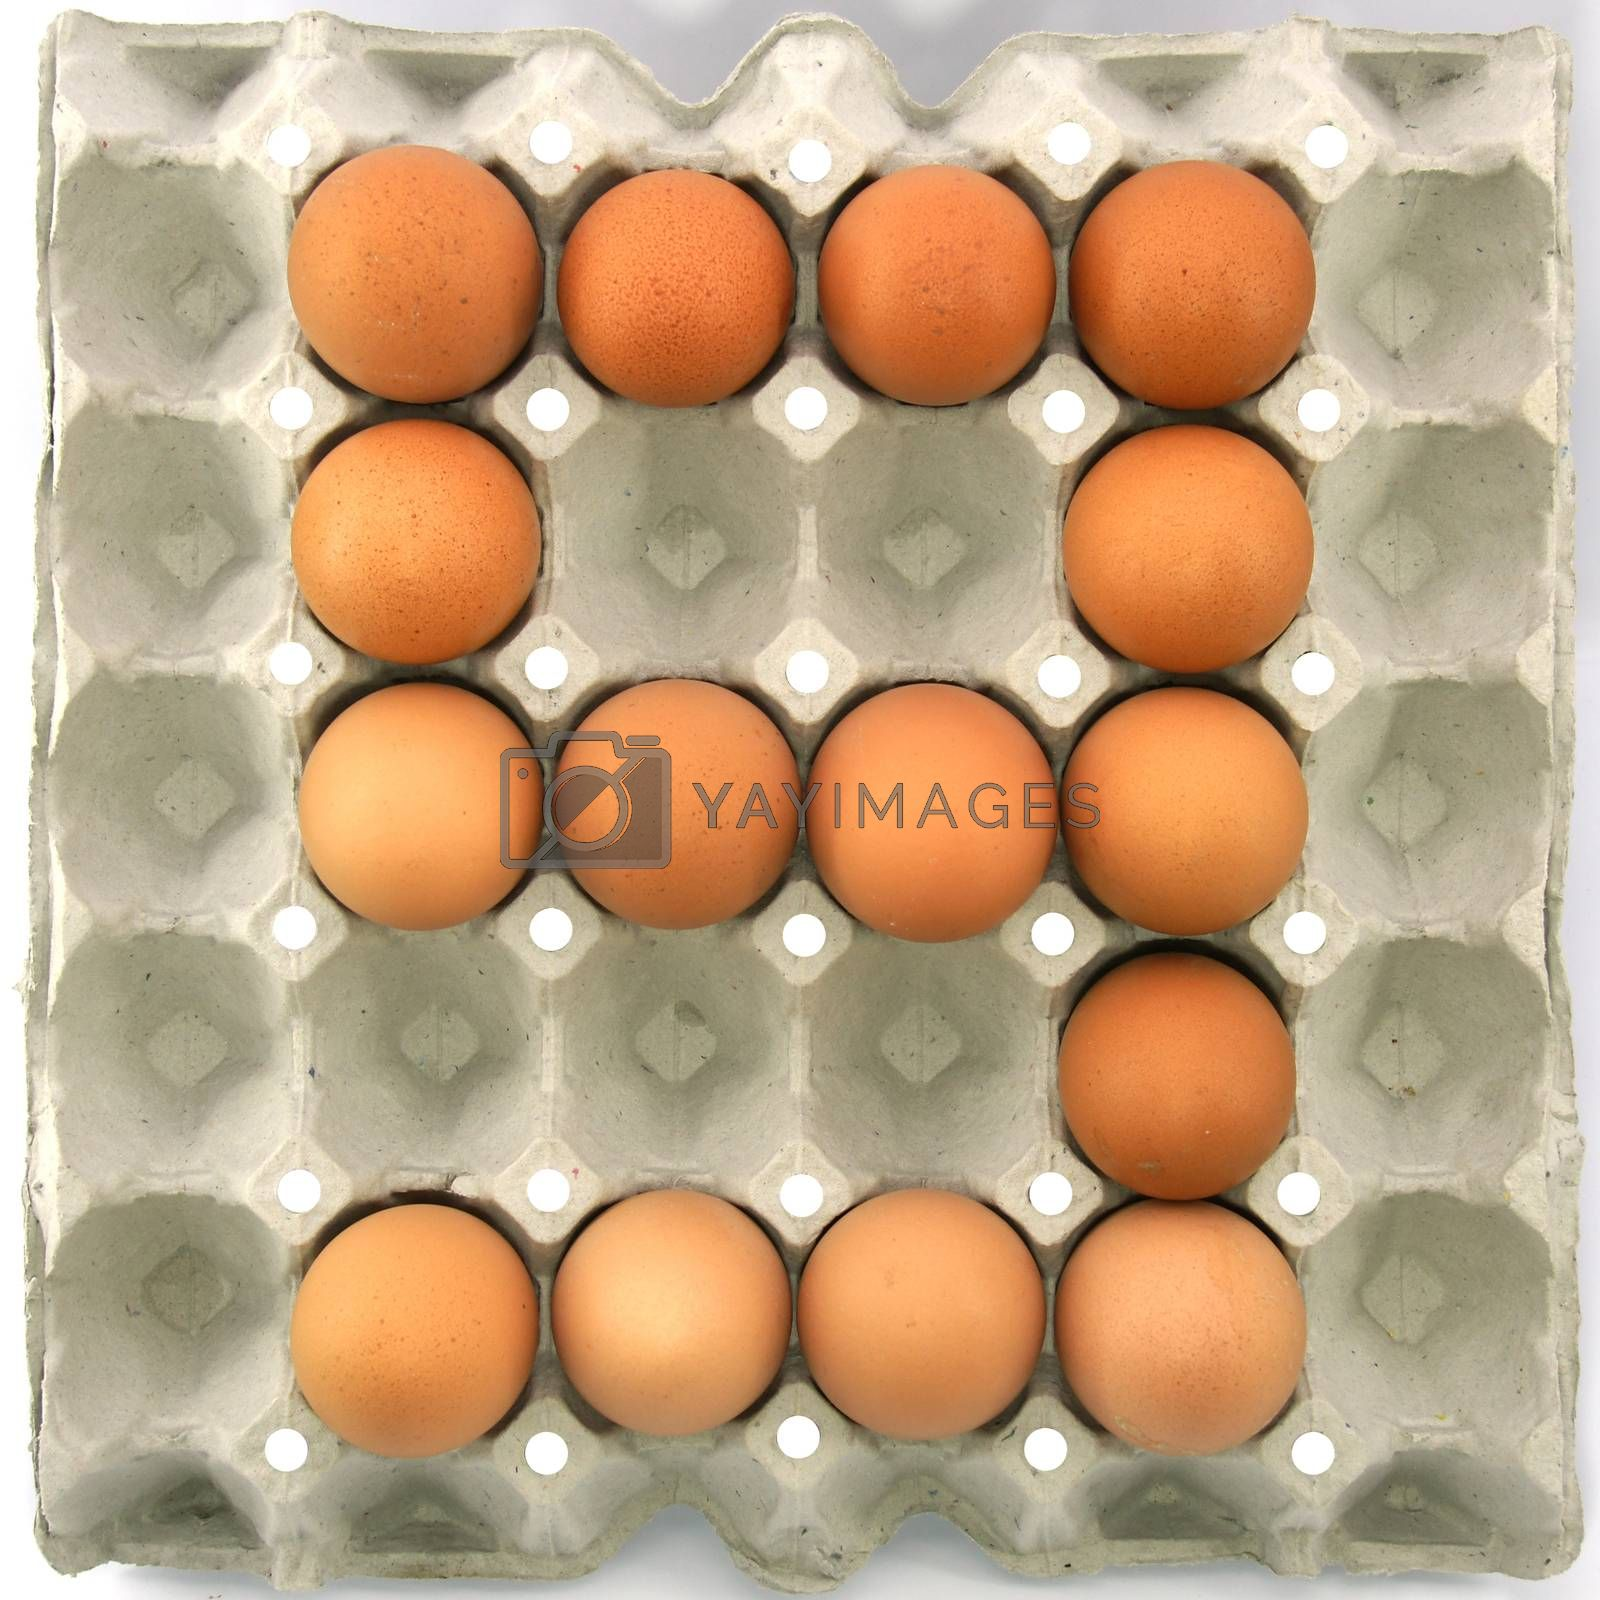 Number nine of eggs in the paper package tray